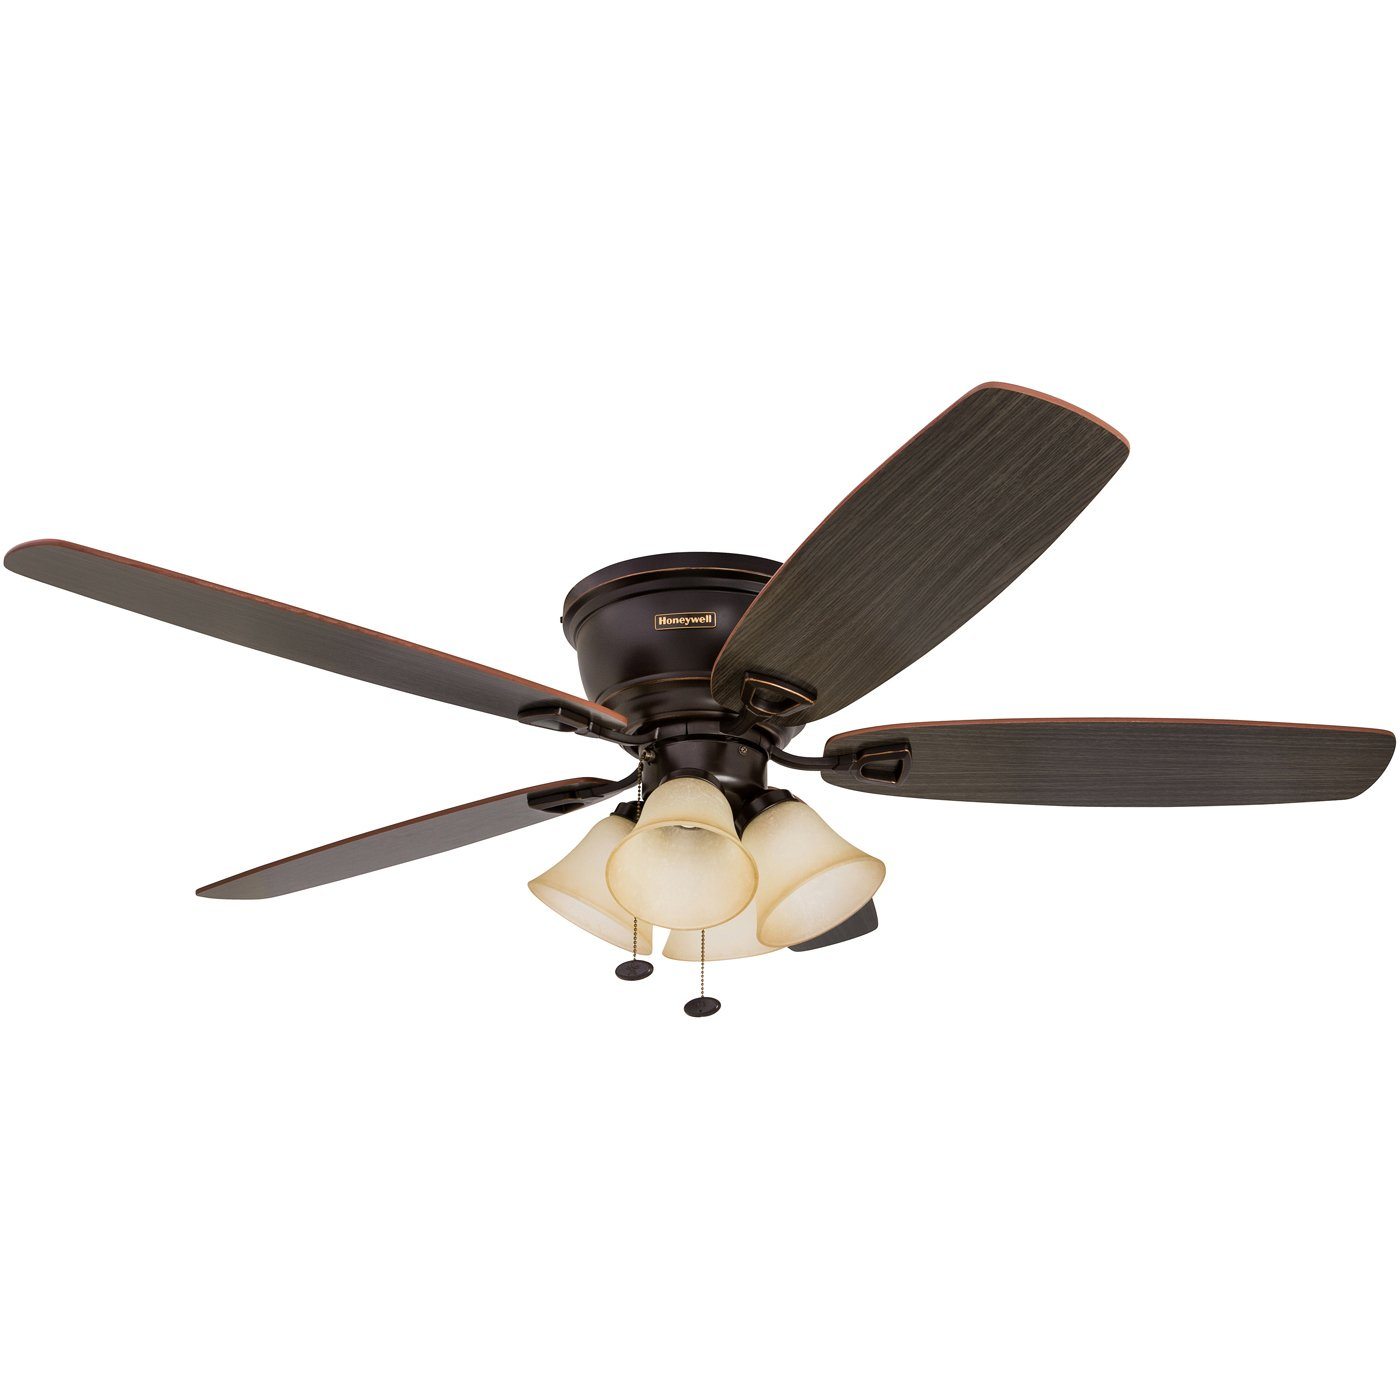 Honeywell Glen Alden 52-Inch Ceiling Fan with Sunset Shade Lights, Hugger/Flush Mount, Low Profile, Five Reversible Cimarron/Ironwood Blades, Oil-Rubbed Bronze